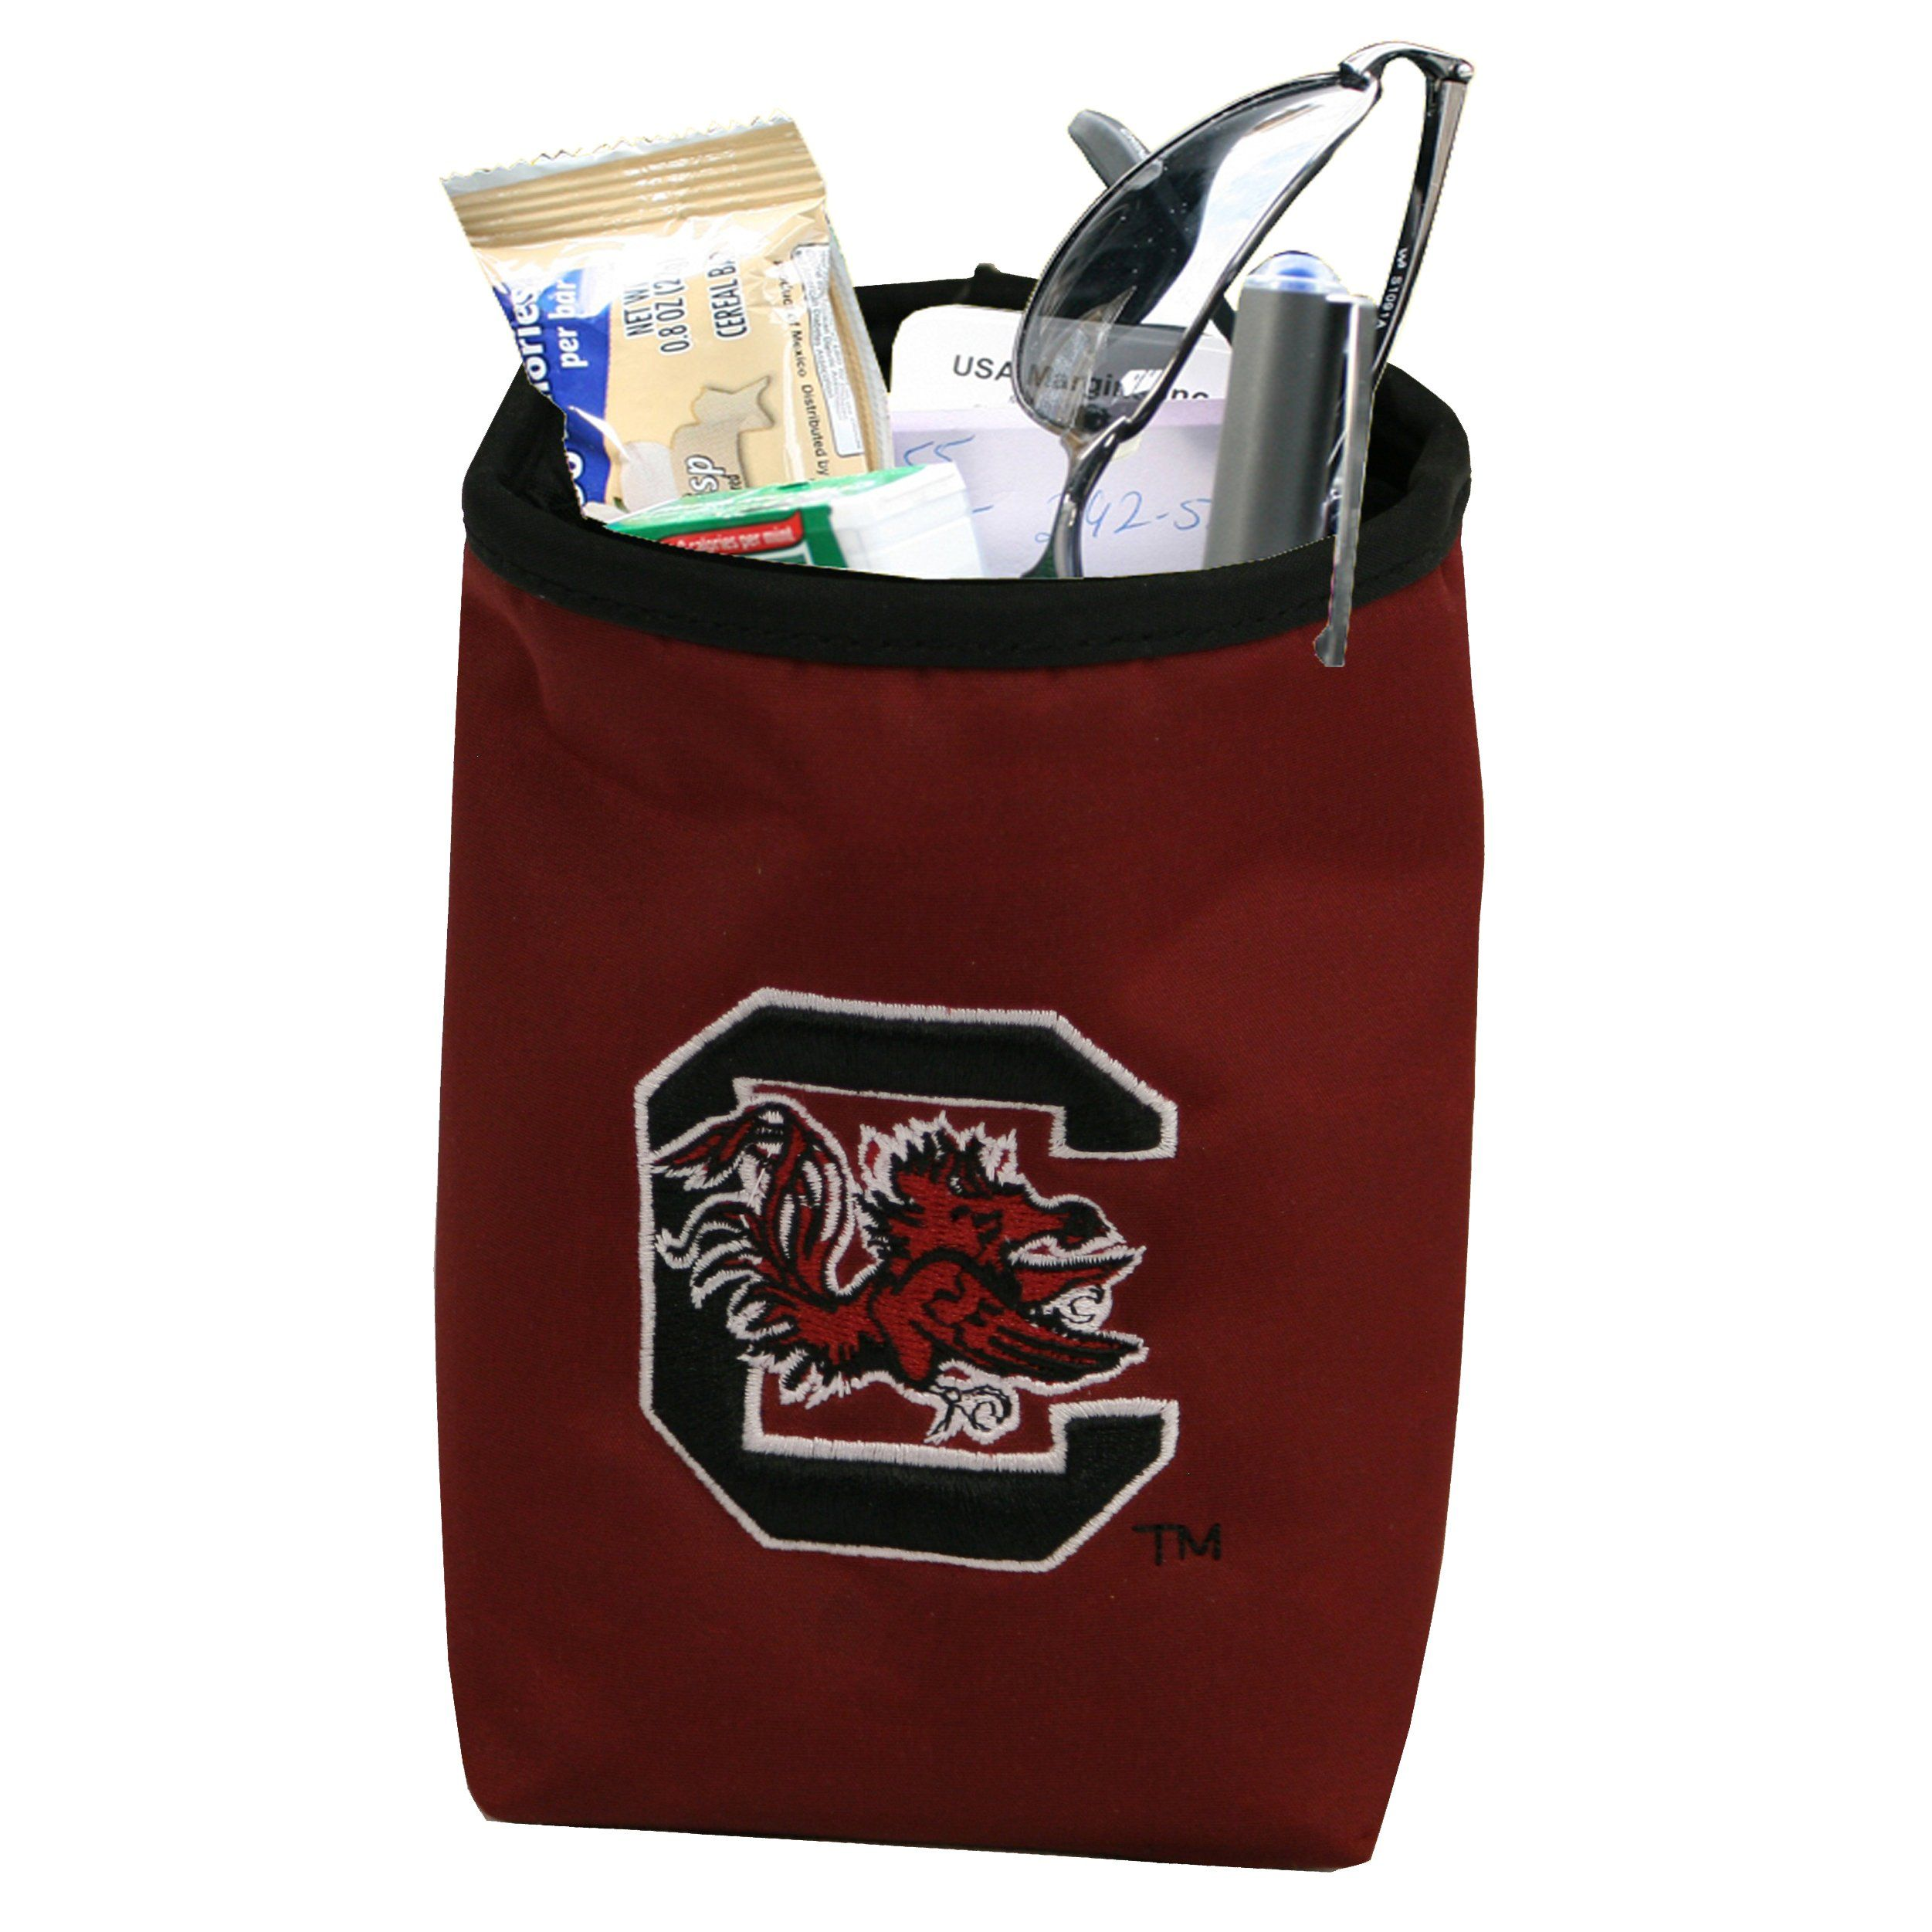 NCAA Car Vent Pocket Organizer with Embroidered Logo Fits